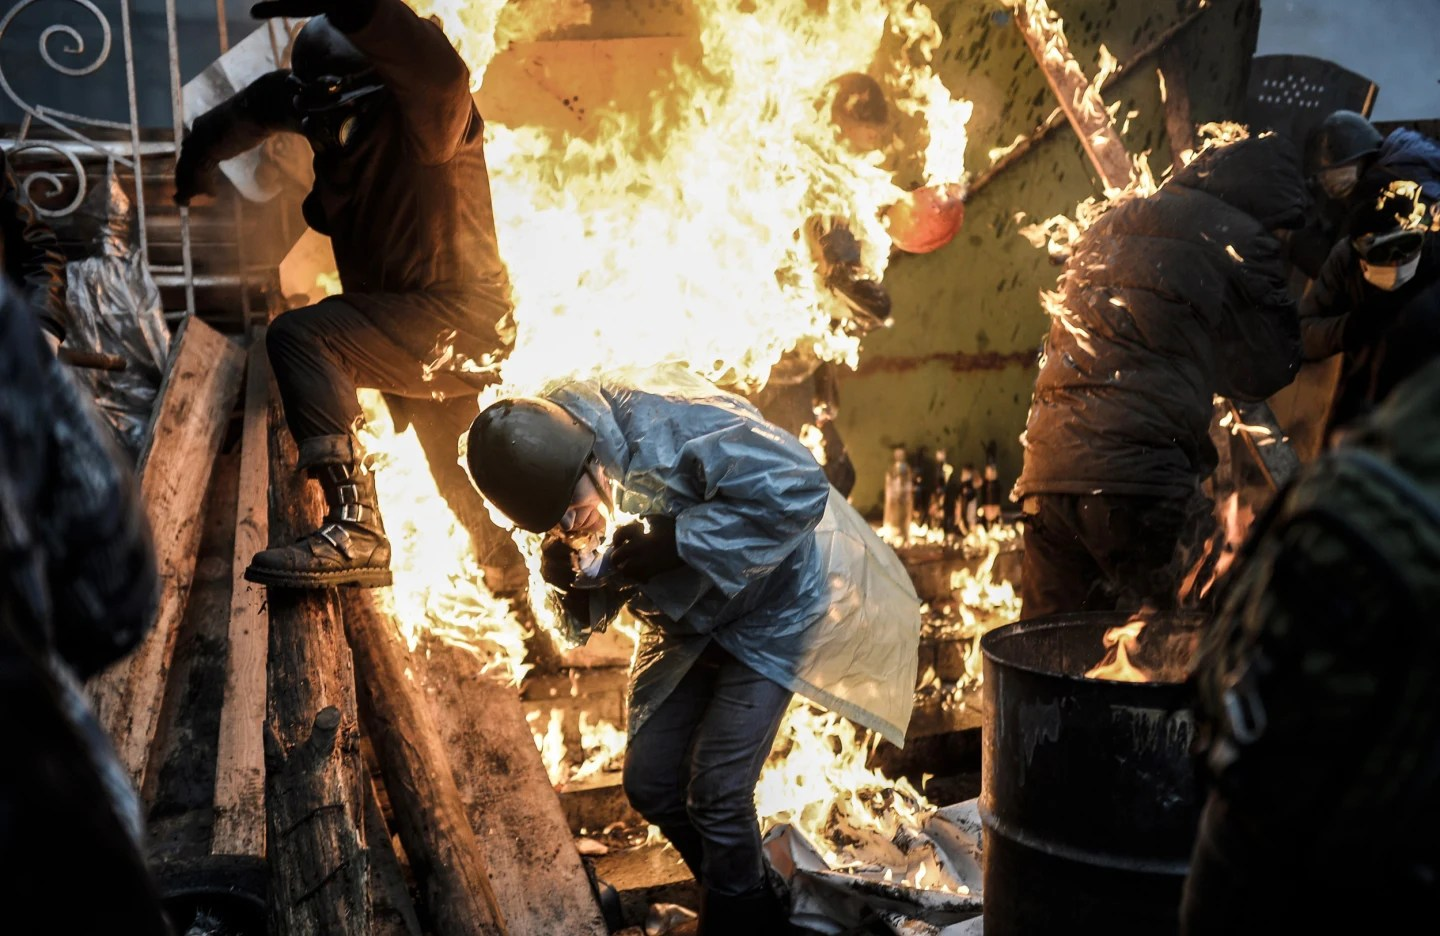 Fire breaks out in Protest Kiev